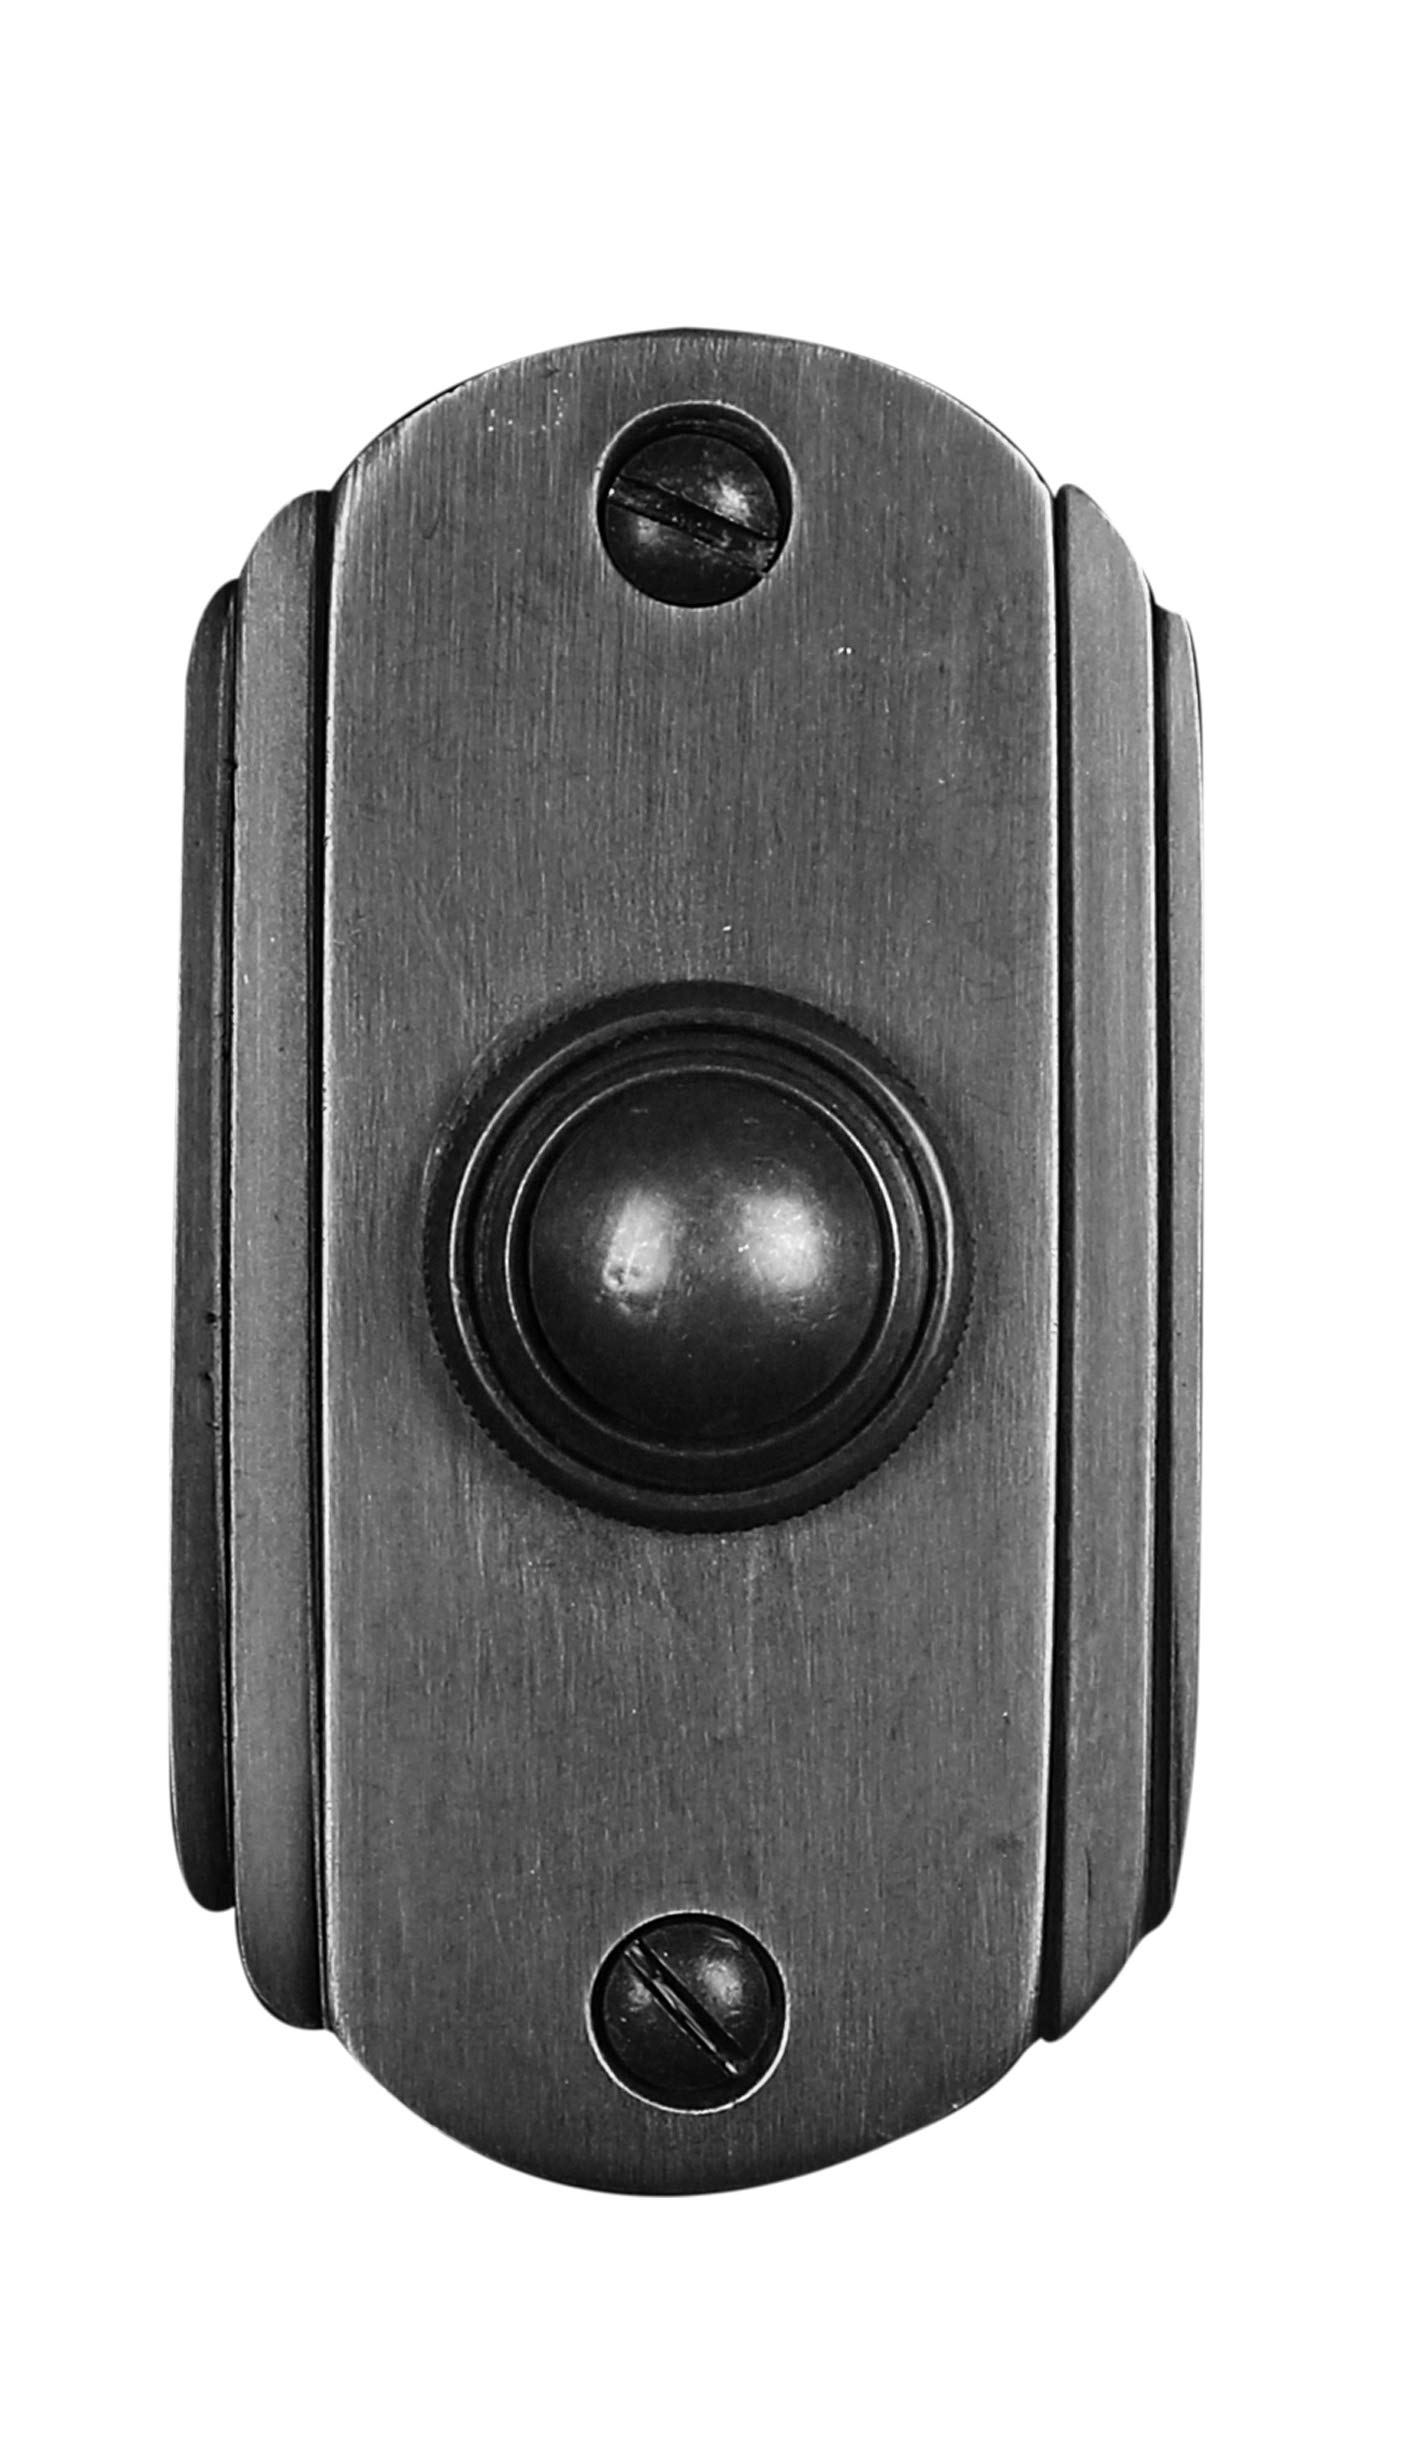 Wired Iron Doorbell Chime Push Button Vintage in Black Powder Coat Finish Vintage Decorative Door Bell with Easy Installation